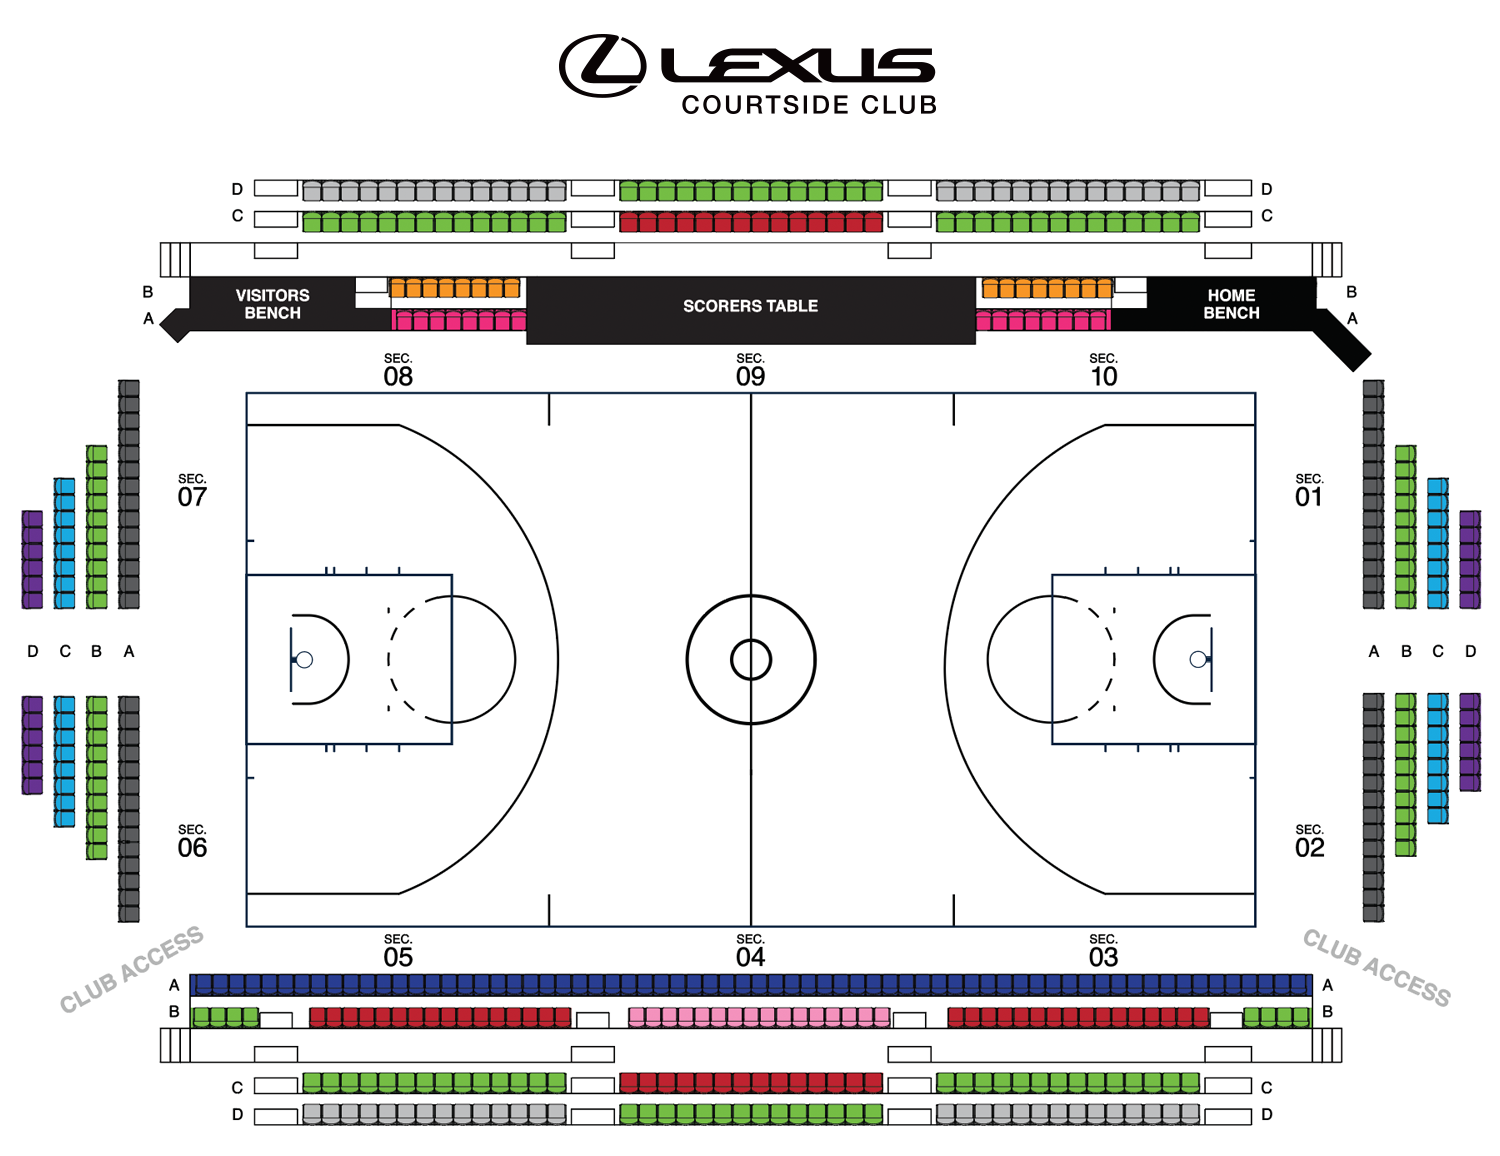 Timberwolves Lexus Courtside Club Seating Map